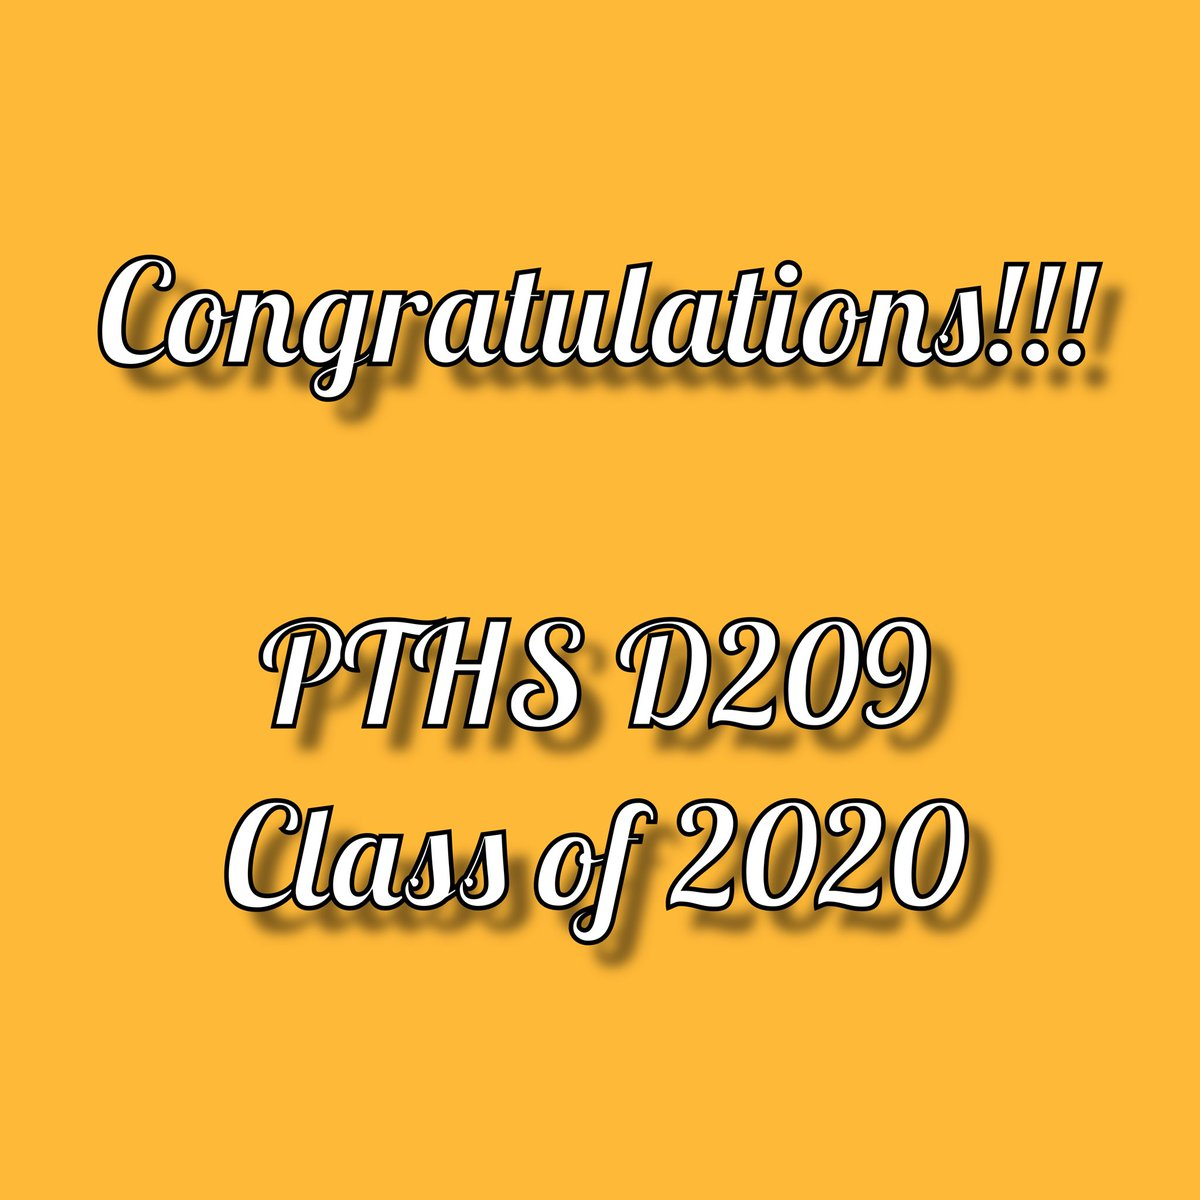 Congratulations to the Proviso Township High Schools District 209 Class of 2020!!! #OneProviso #WeNeedYou pic.twitter.com/BVRfsE9nP9